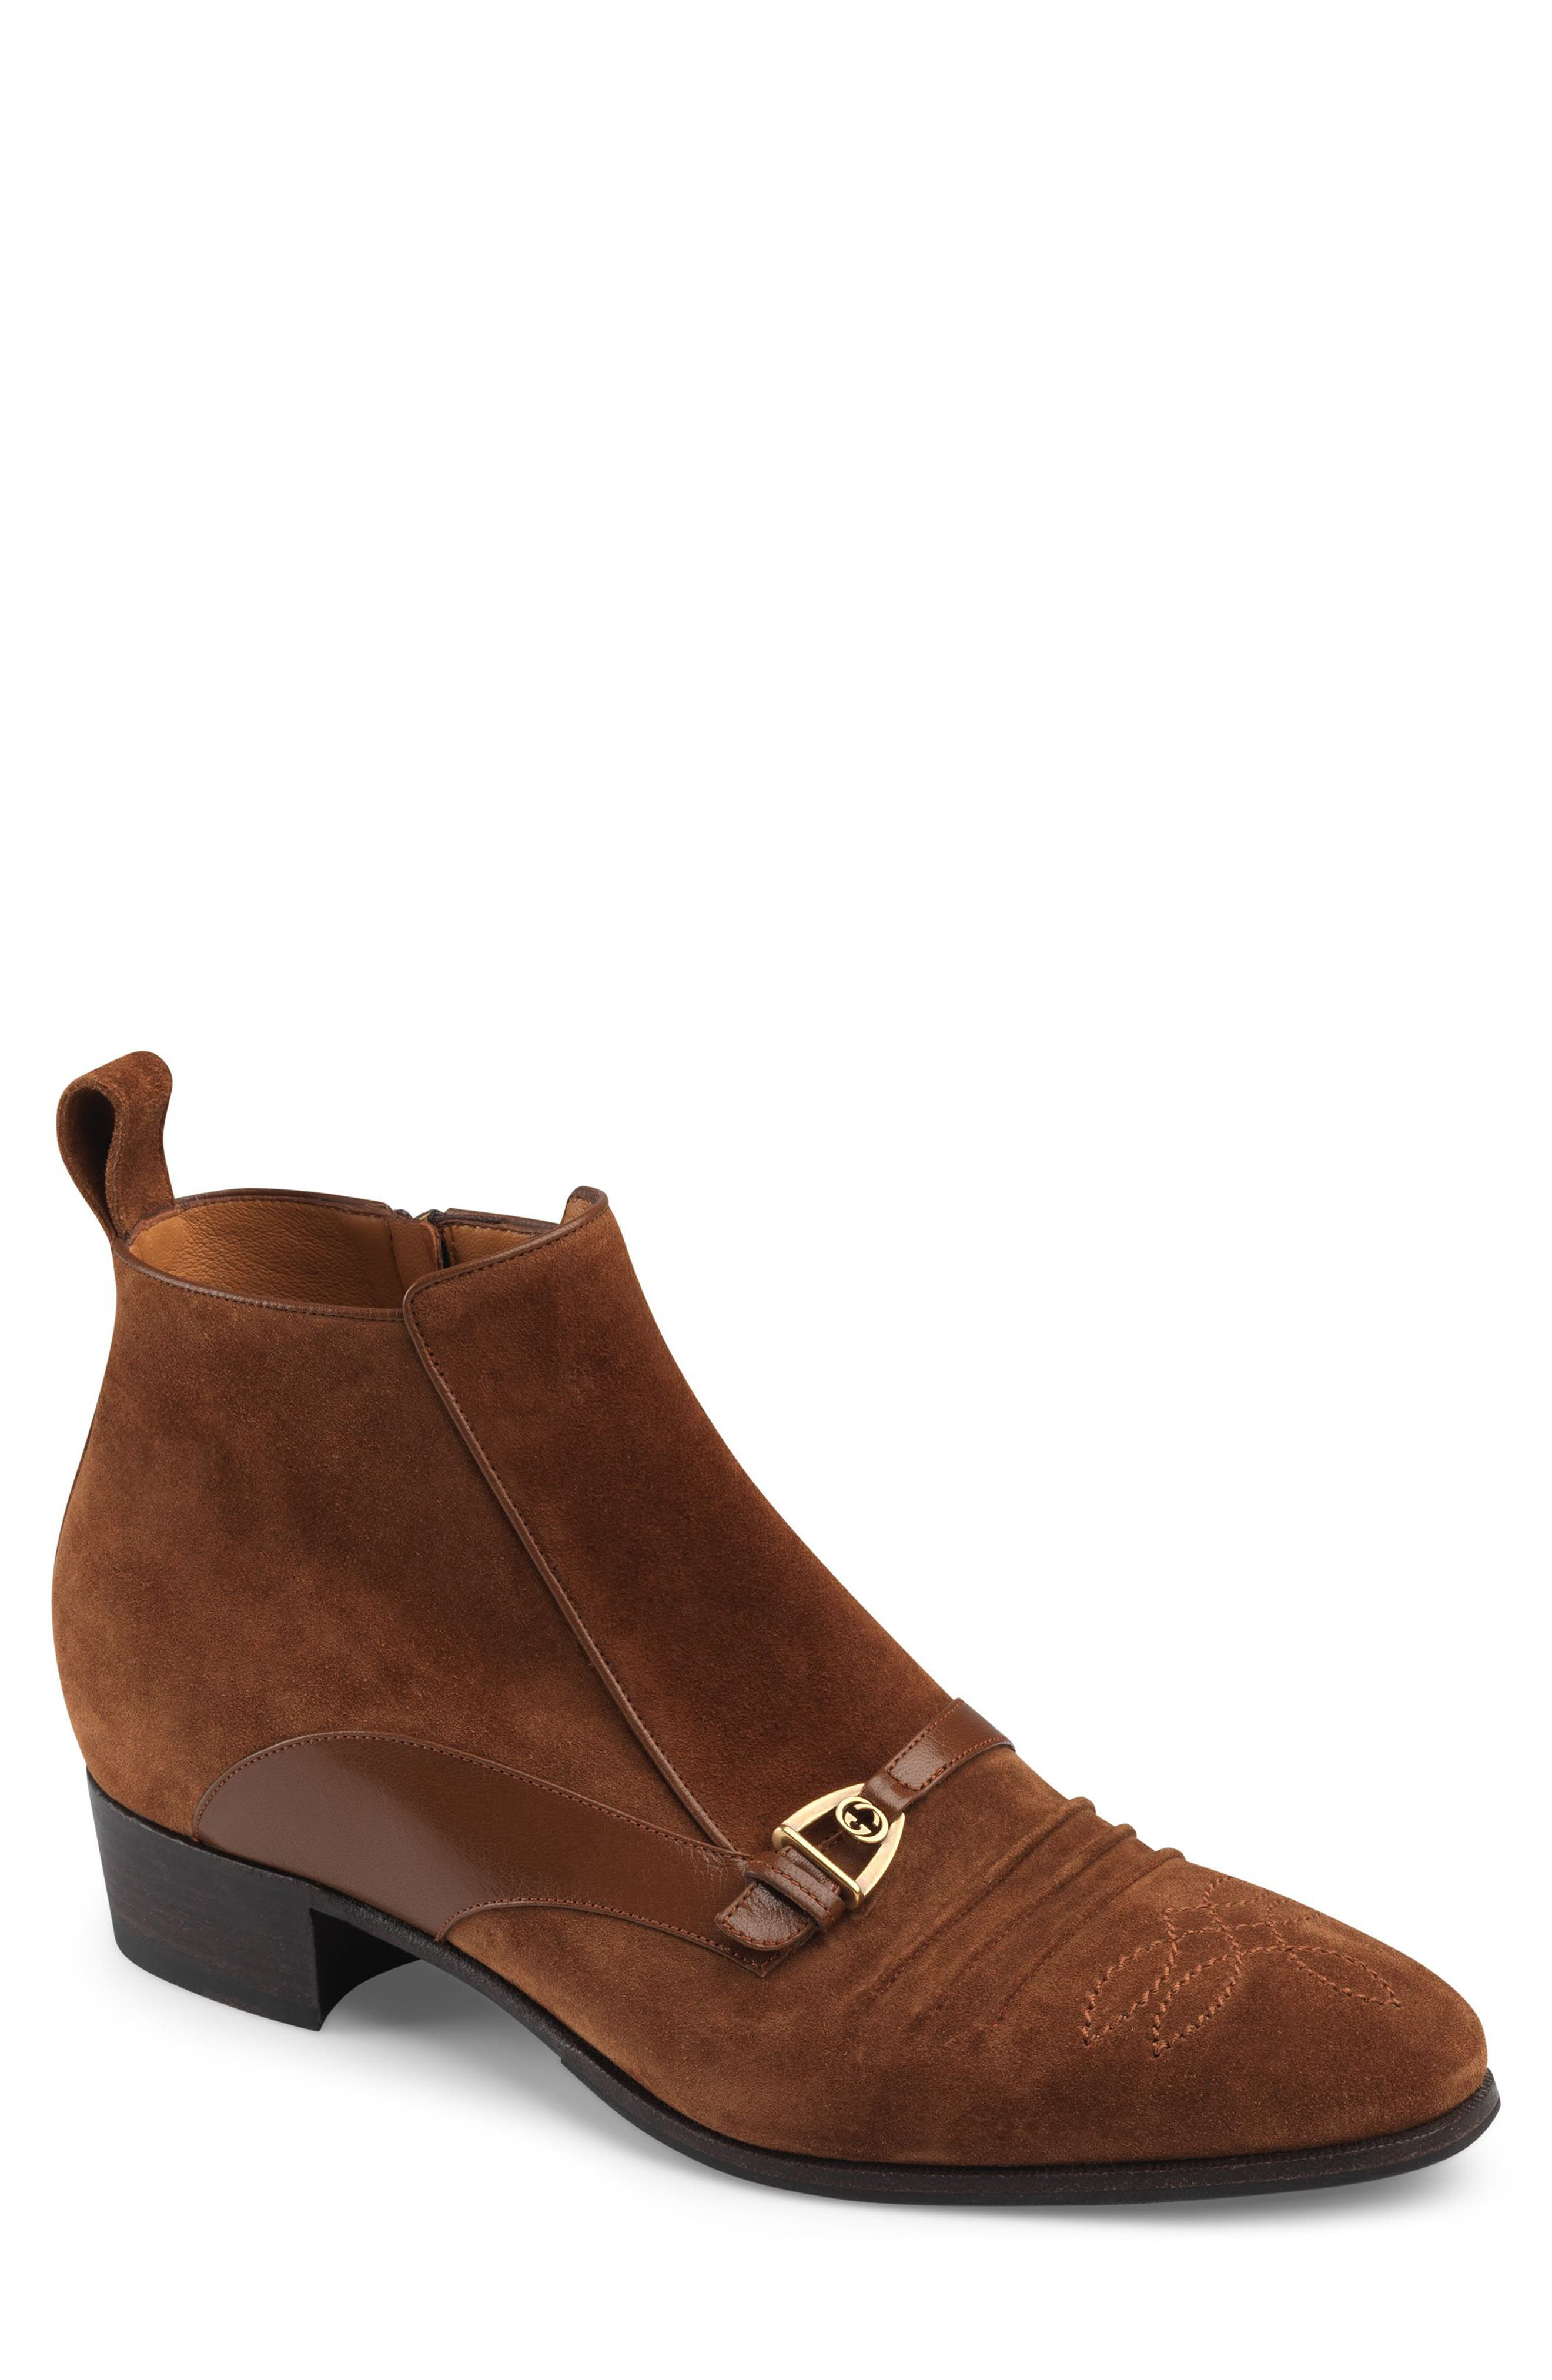 Gucci Moloch Boot, Brown